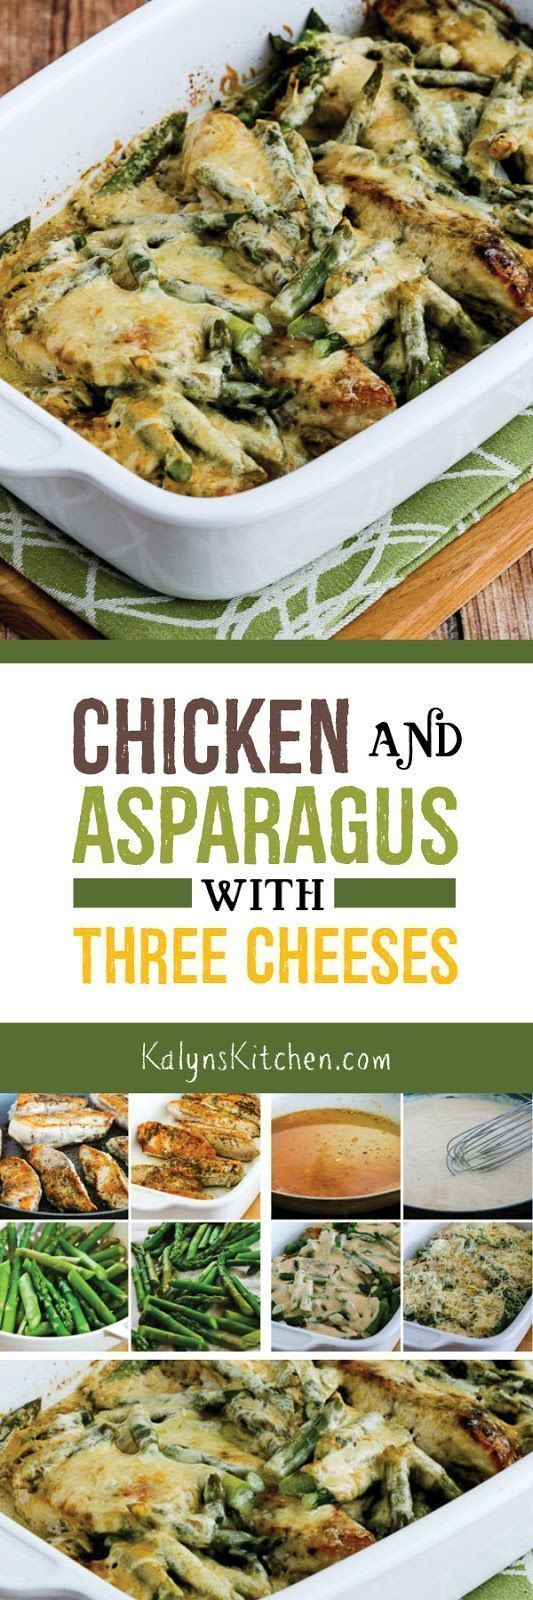 Chicken and Asparagus with Three Cheeses is an ultra-easy low-carb casserole that will make you think about spring! This delicious chicken and asparagus combination is also Keto, low-glycemic, gluten-free, and it can easily be South Beach Diet friendly. [found on http://KalynsKitchen.com]